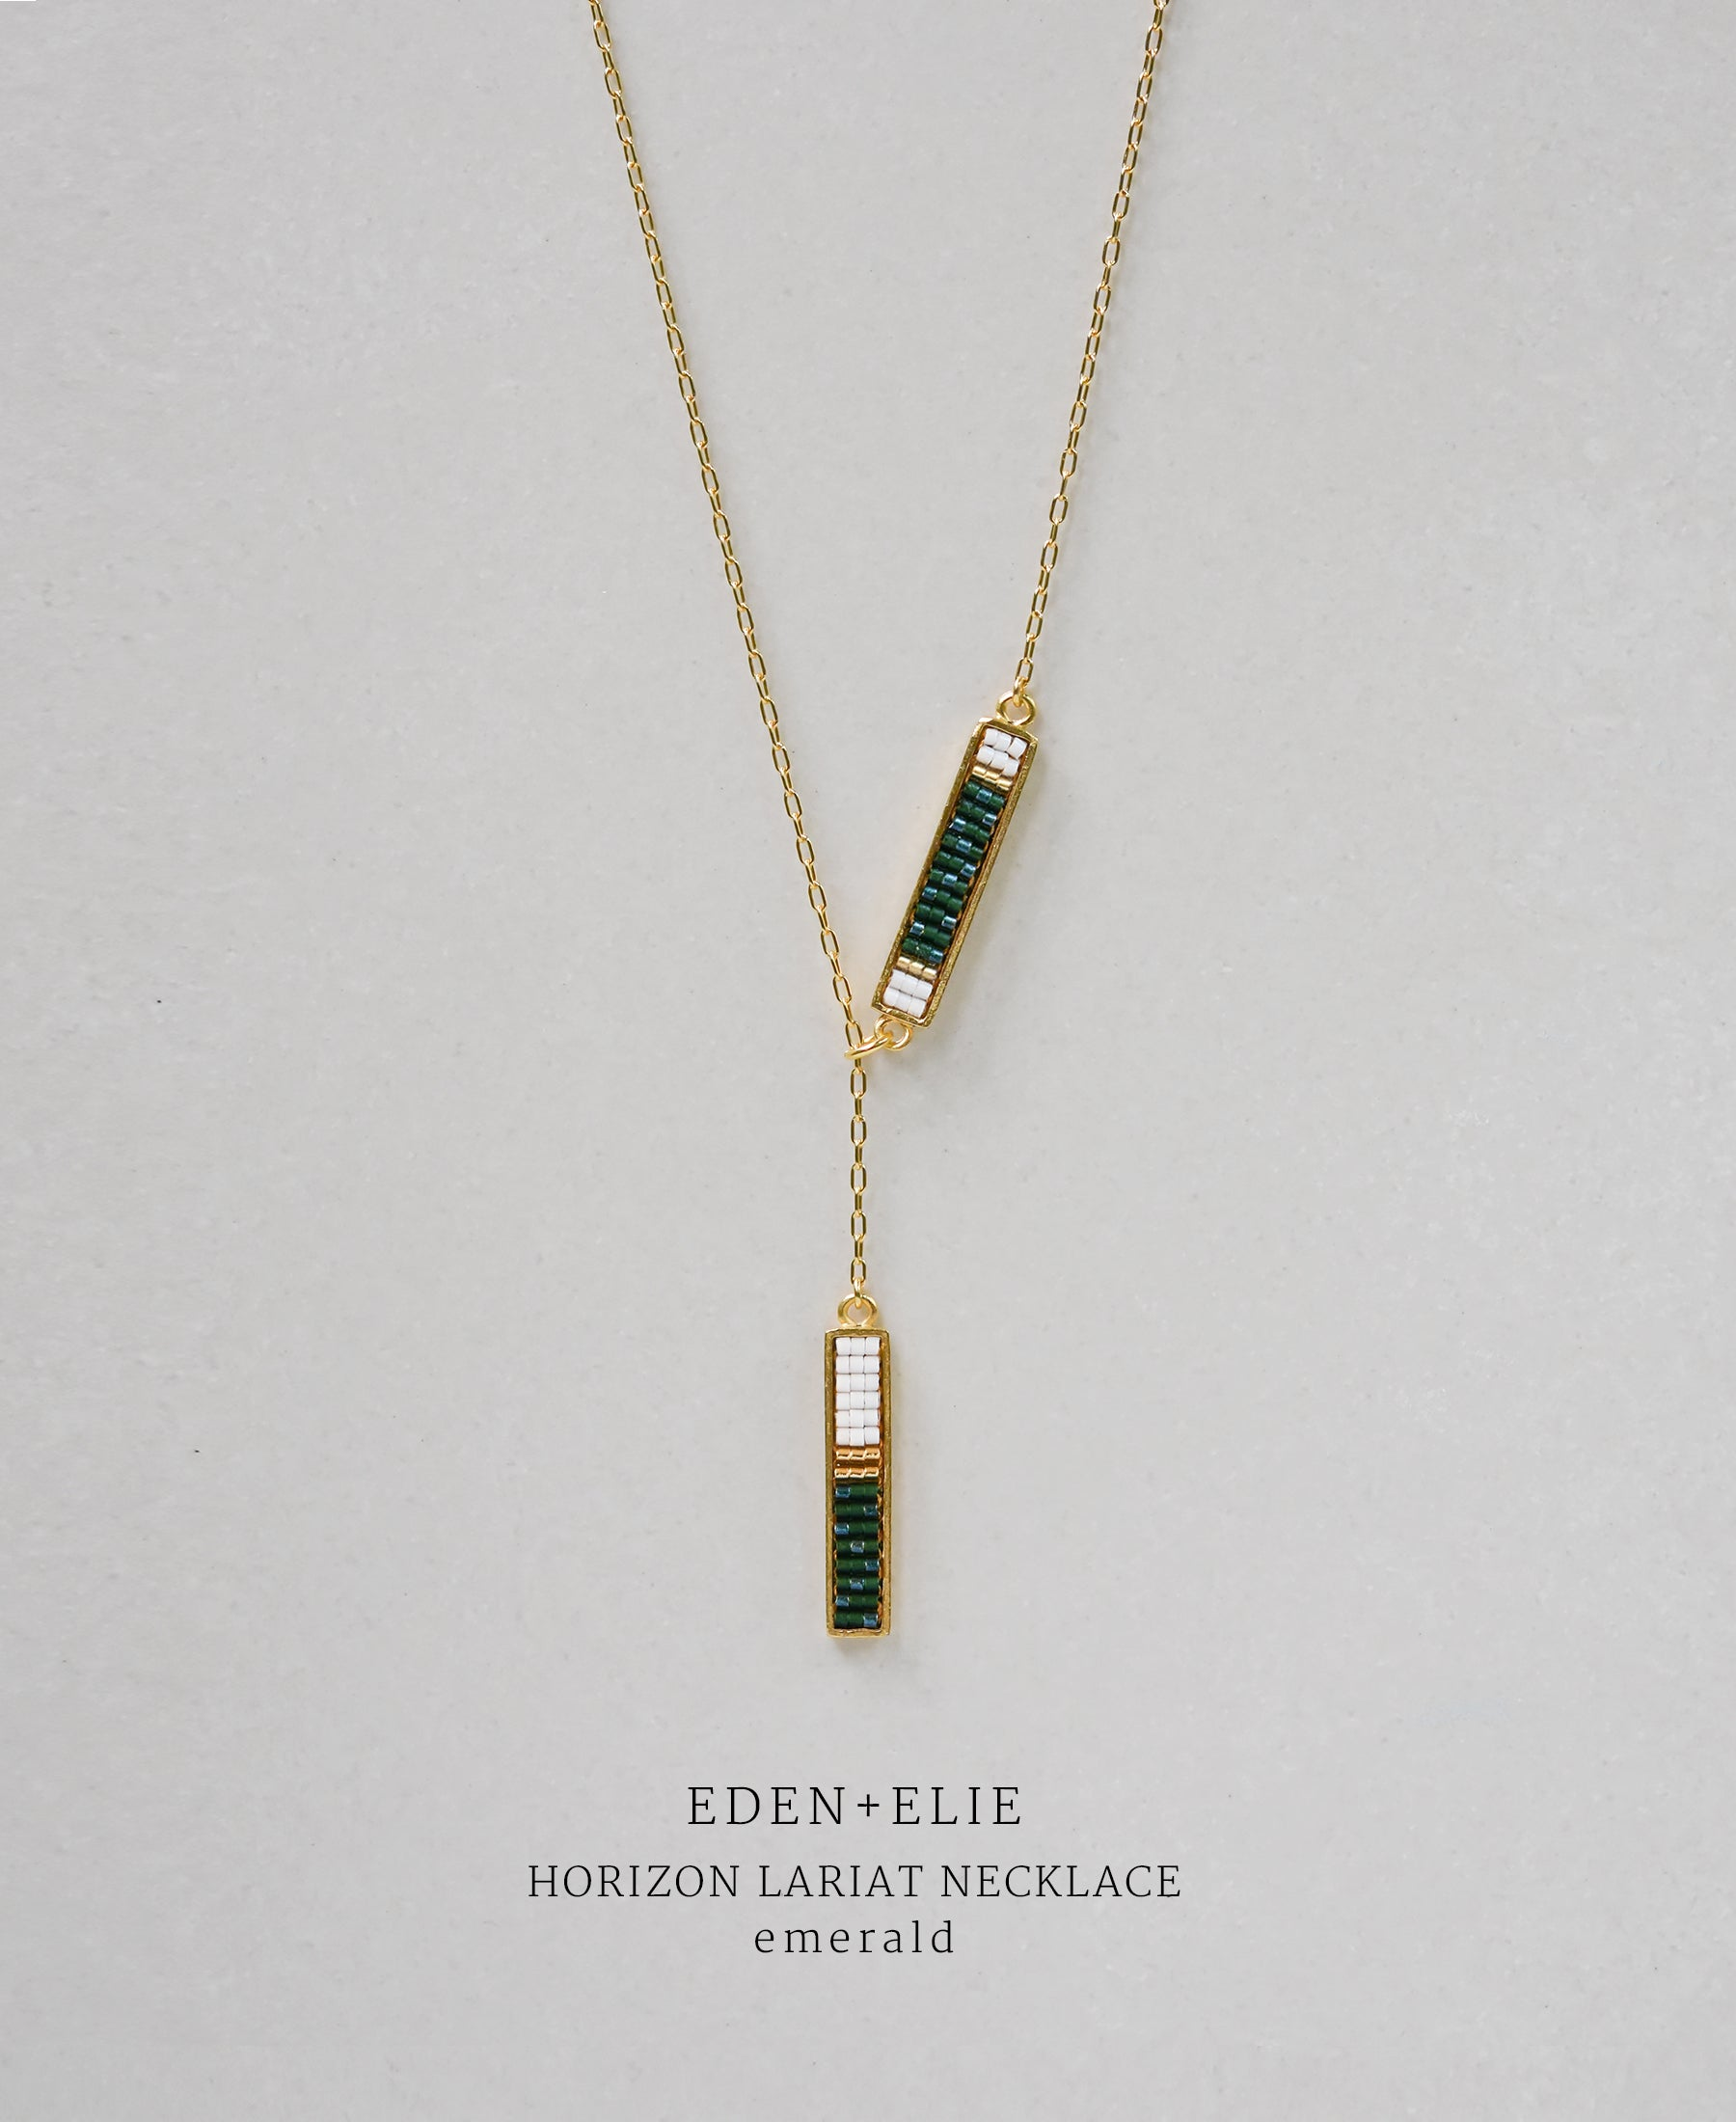 EDEN + ELIE Horizon Lariat necklace - emerald green